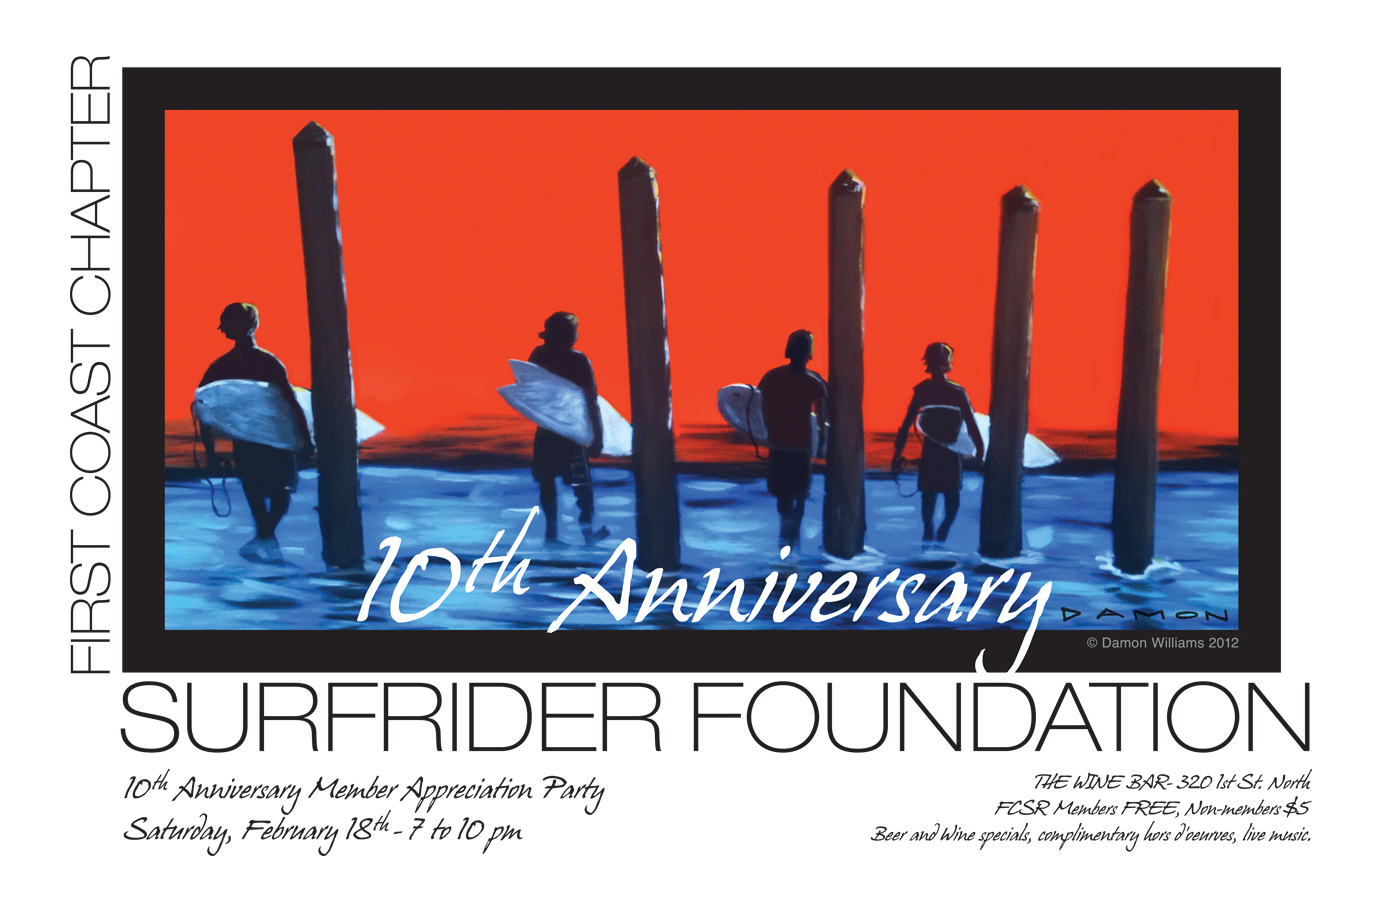 10th Anniversary and Member Appreciation Party